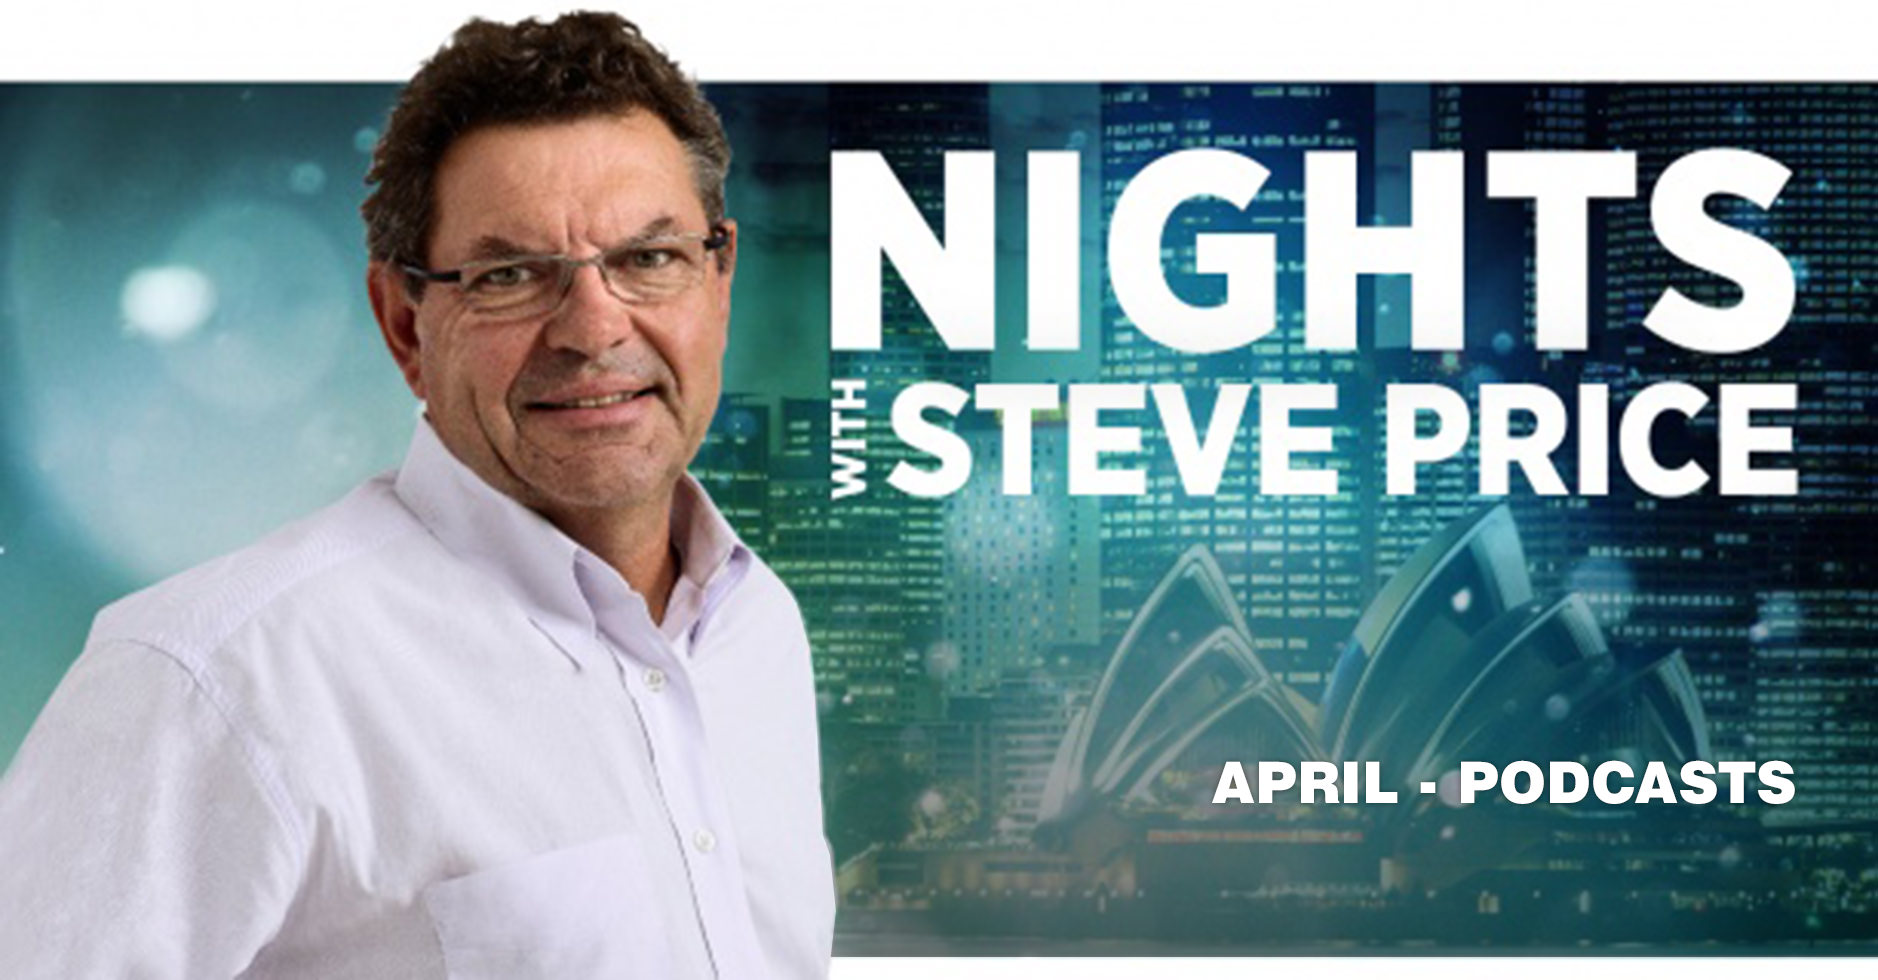 Nights StevePrice April Hero The Informed Investor: May 2018 Podcasts